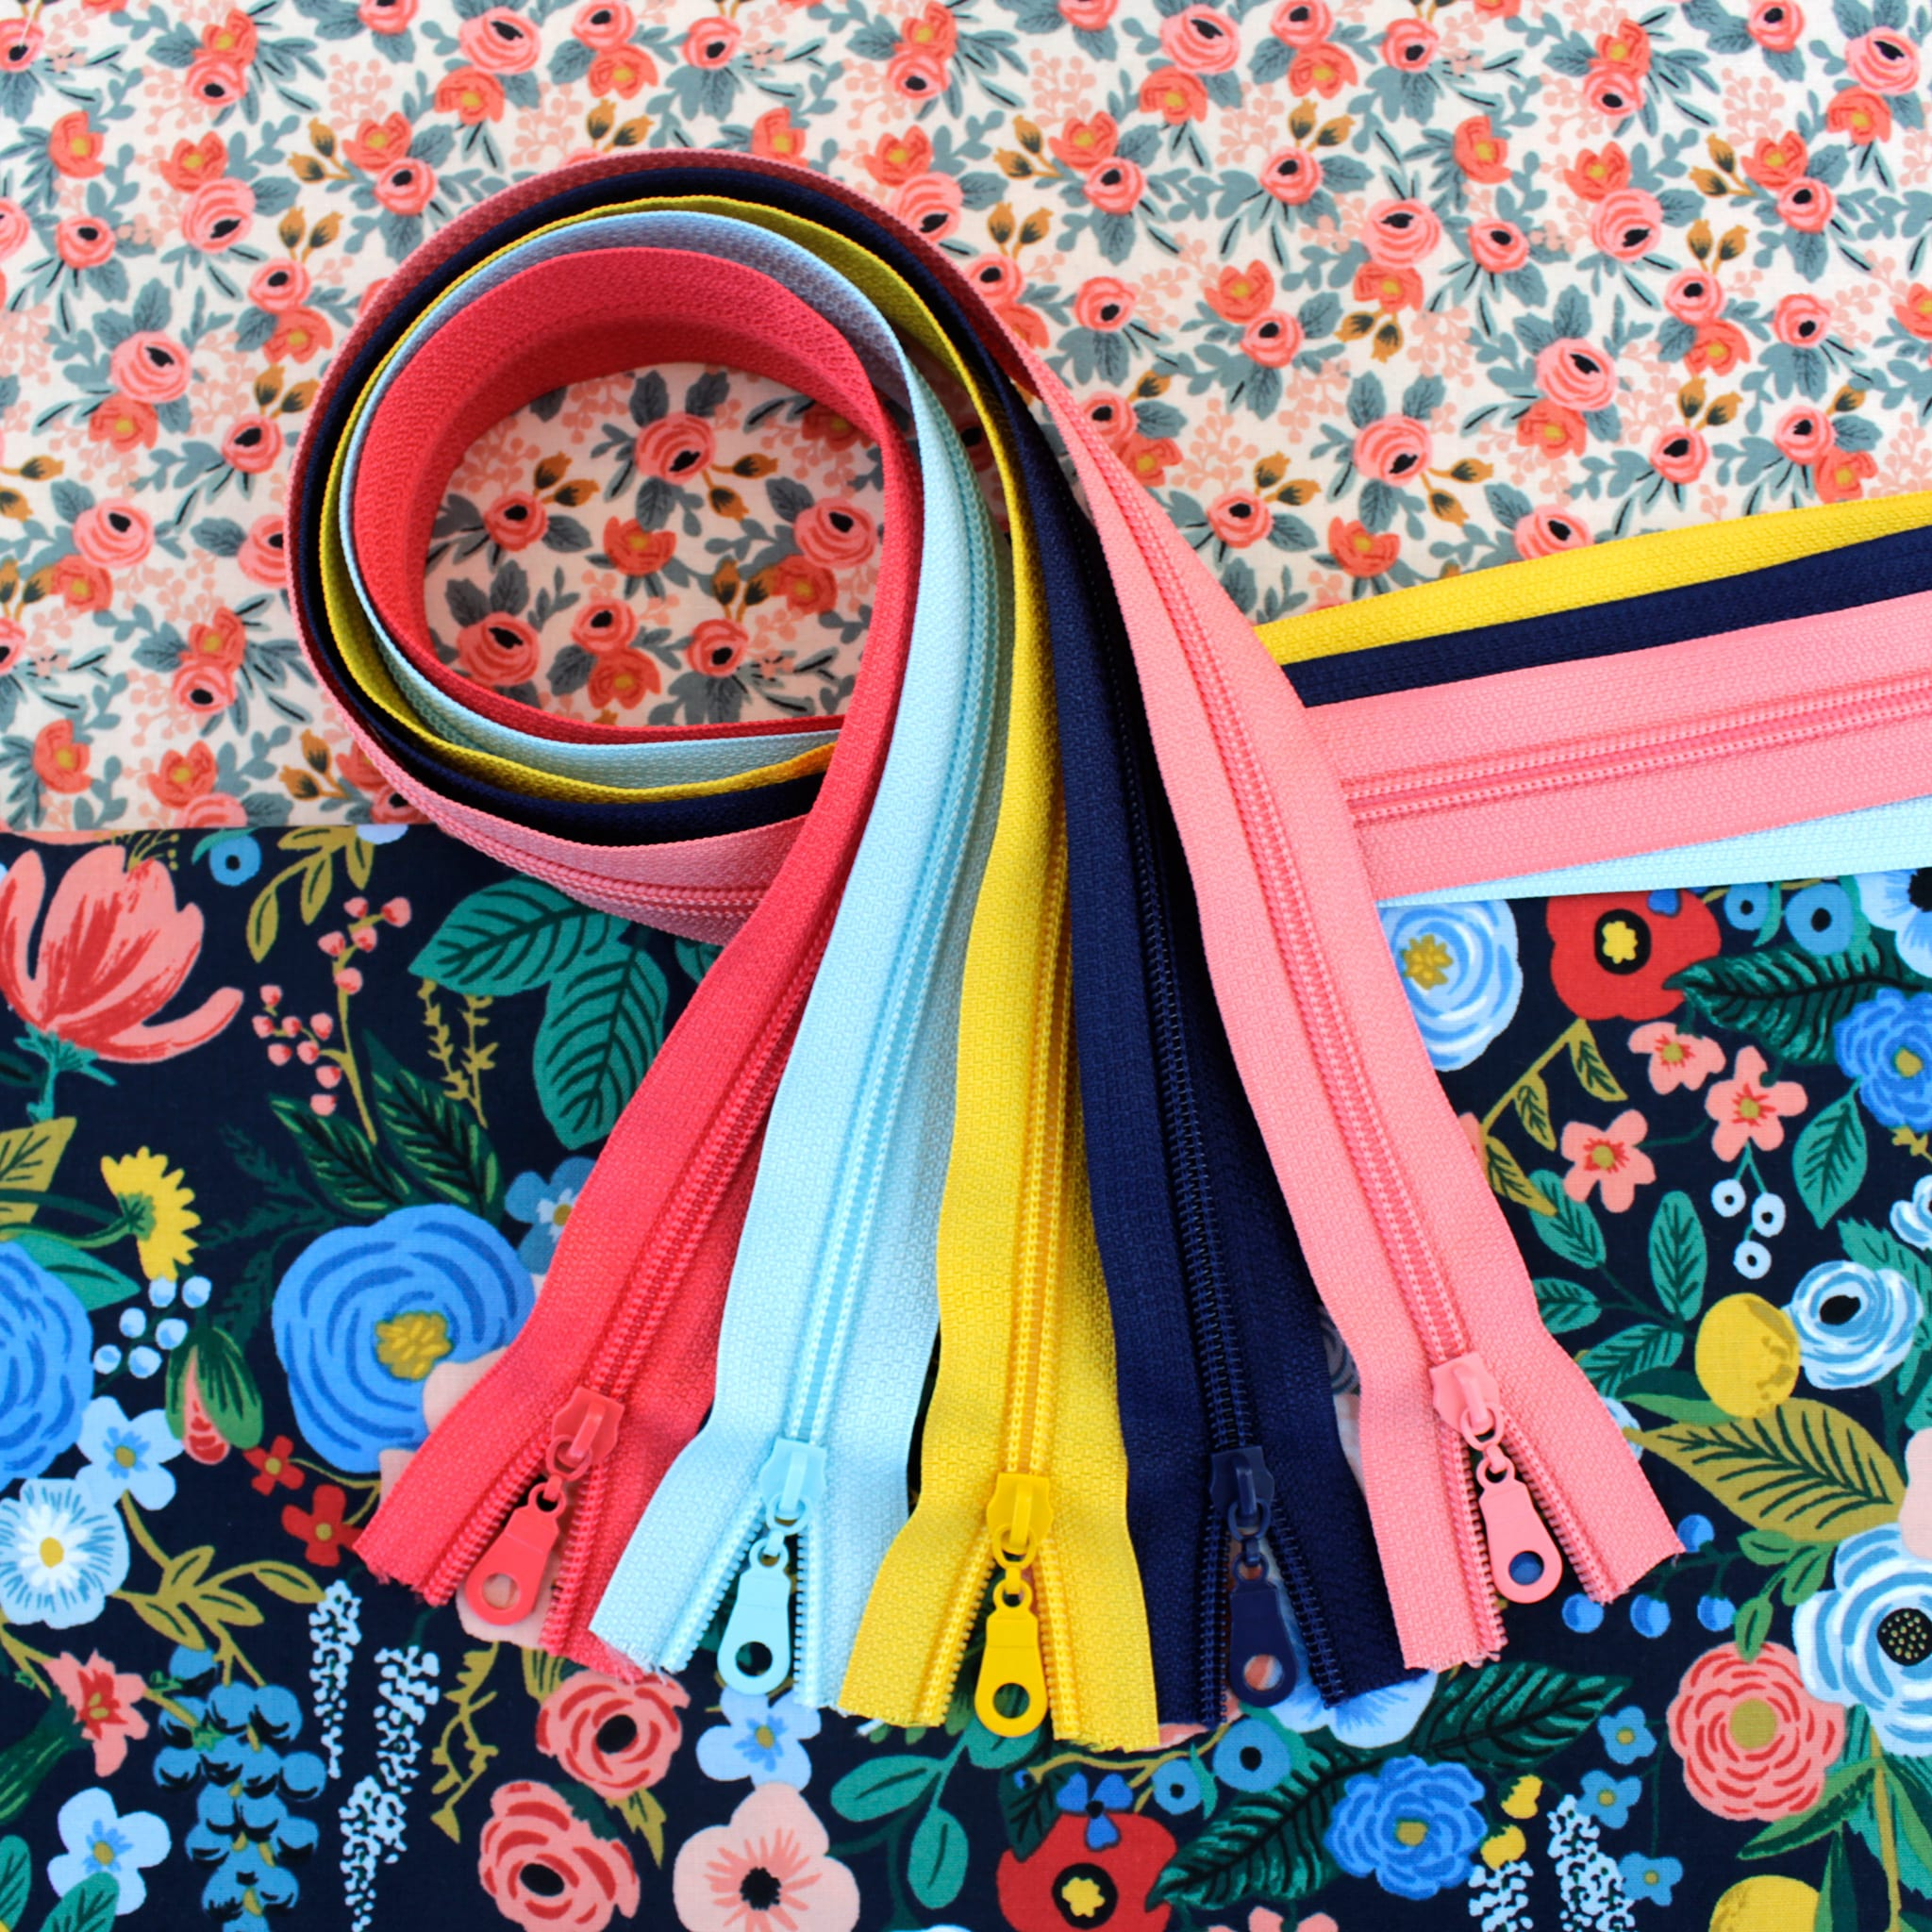 Garden Party Fabric & Zipper Bundle - navy